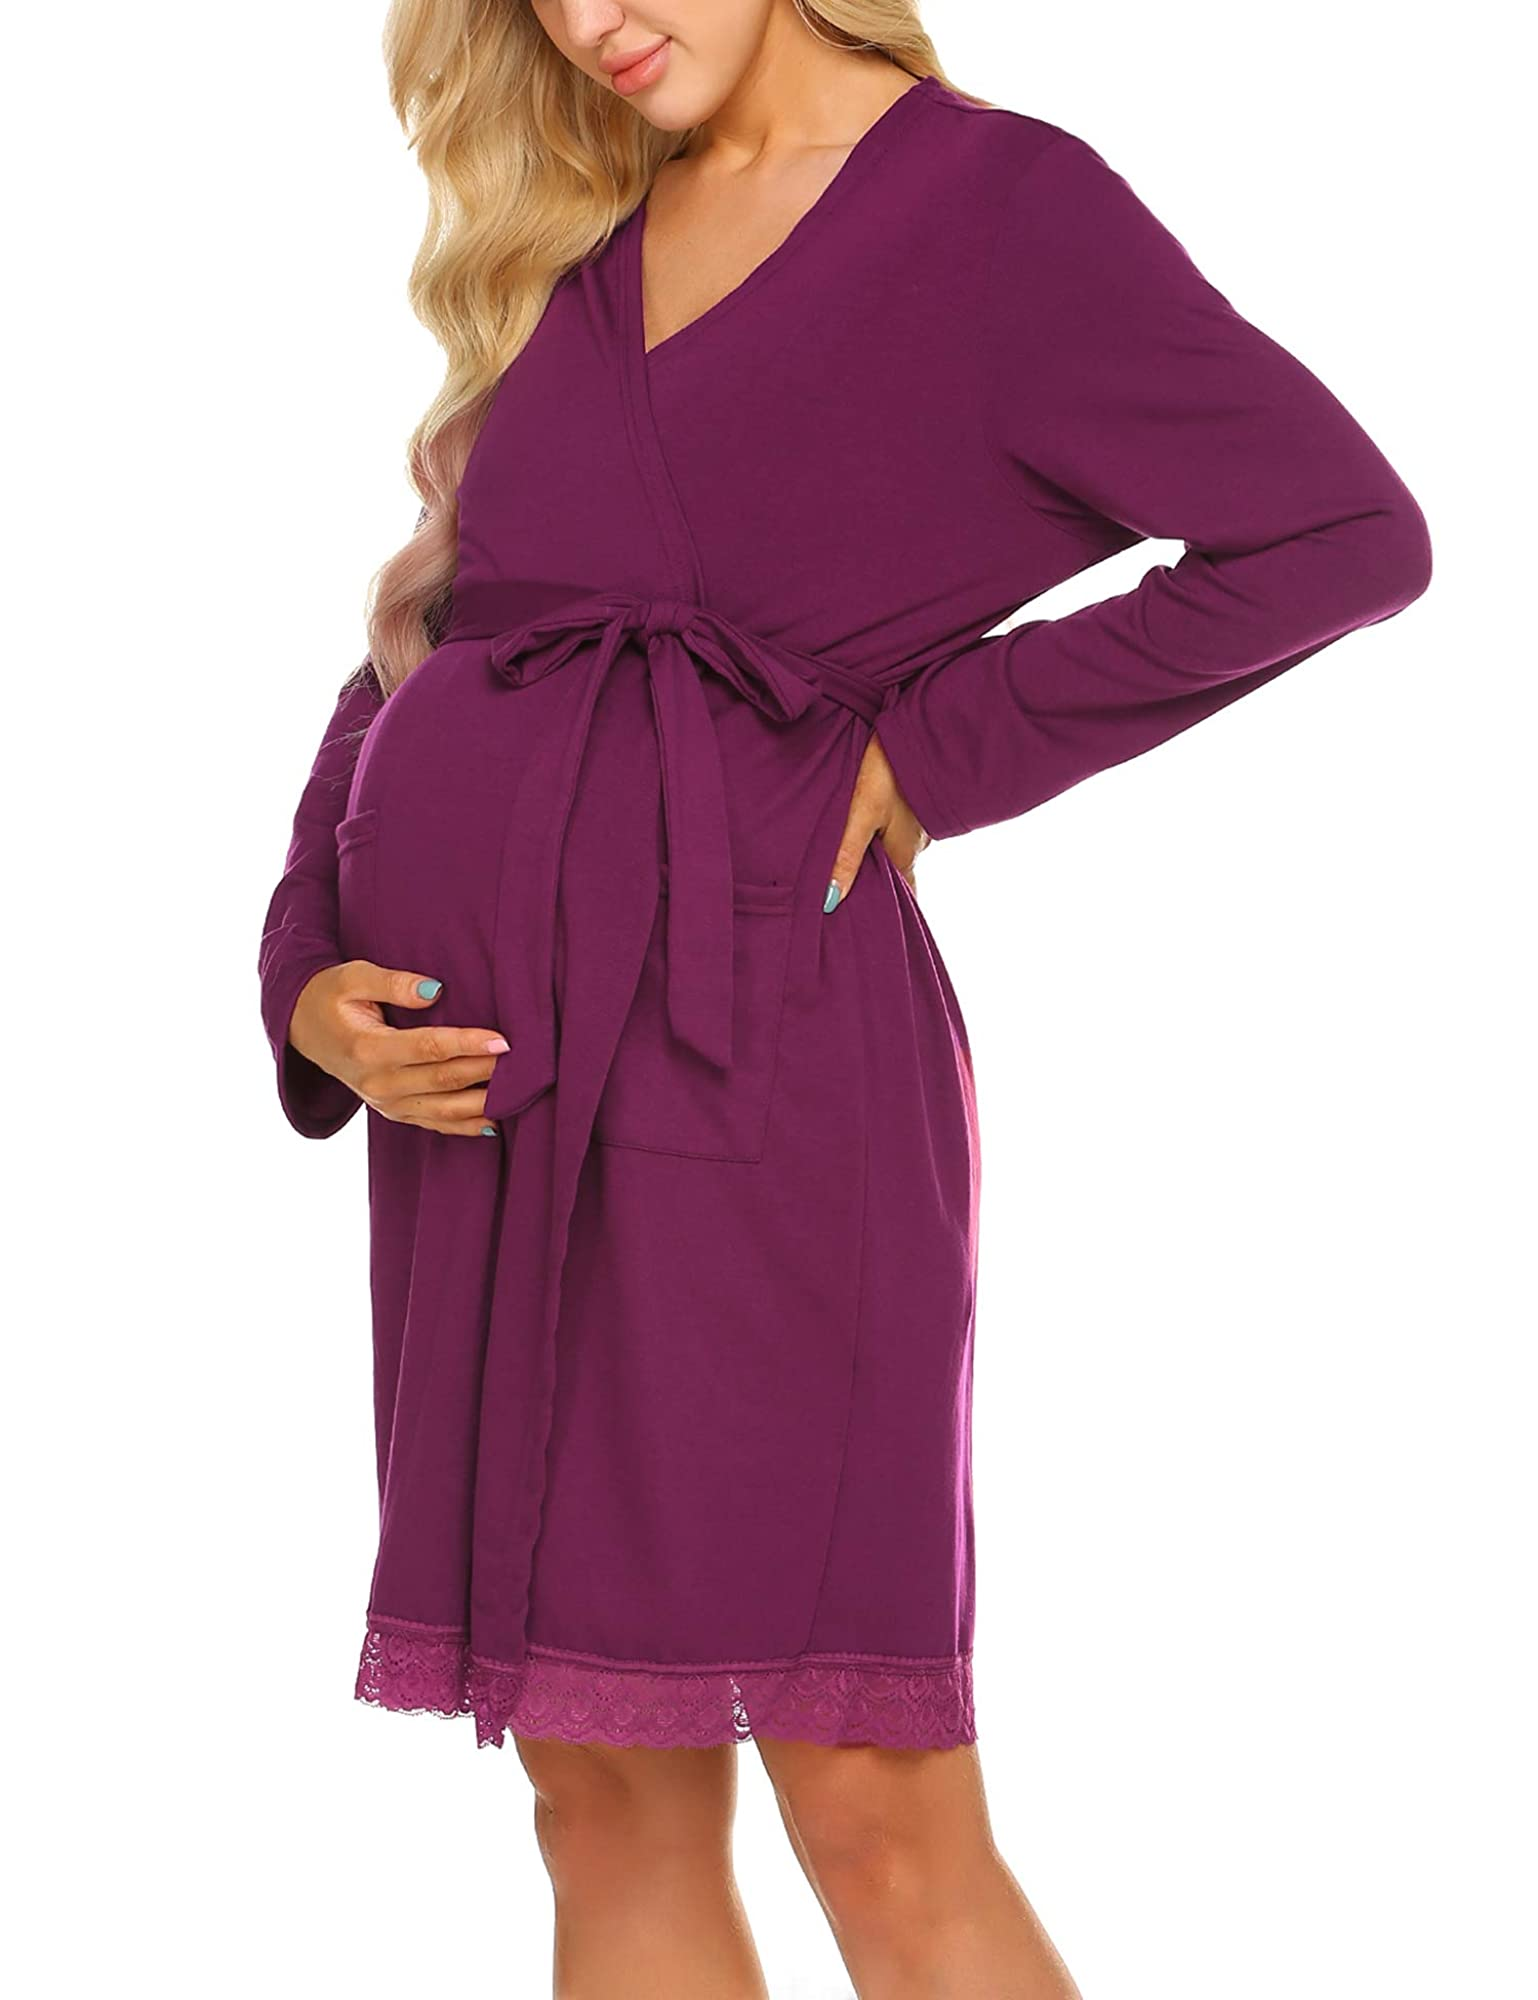 Maternity/Pregnancy/Nursing Robe For Women